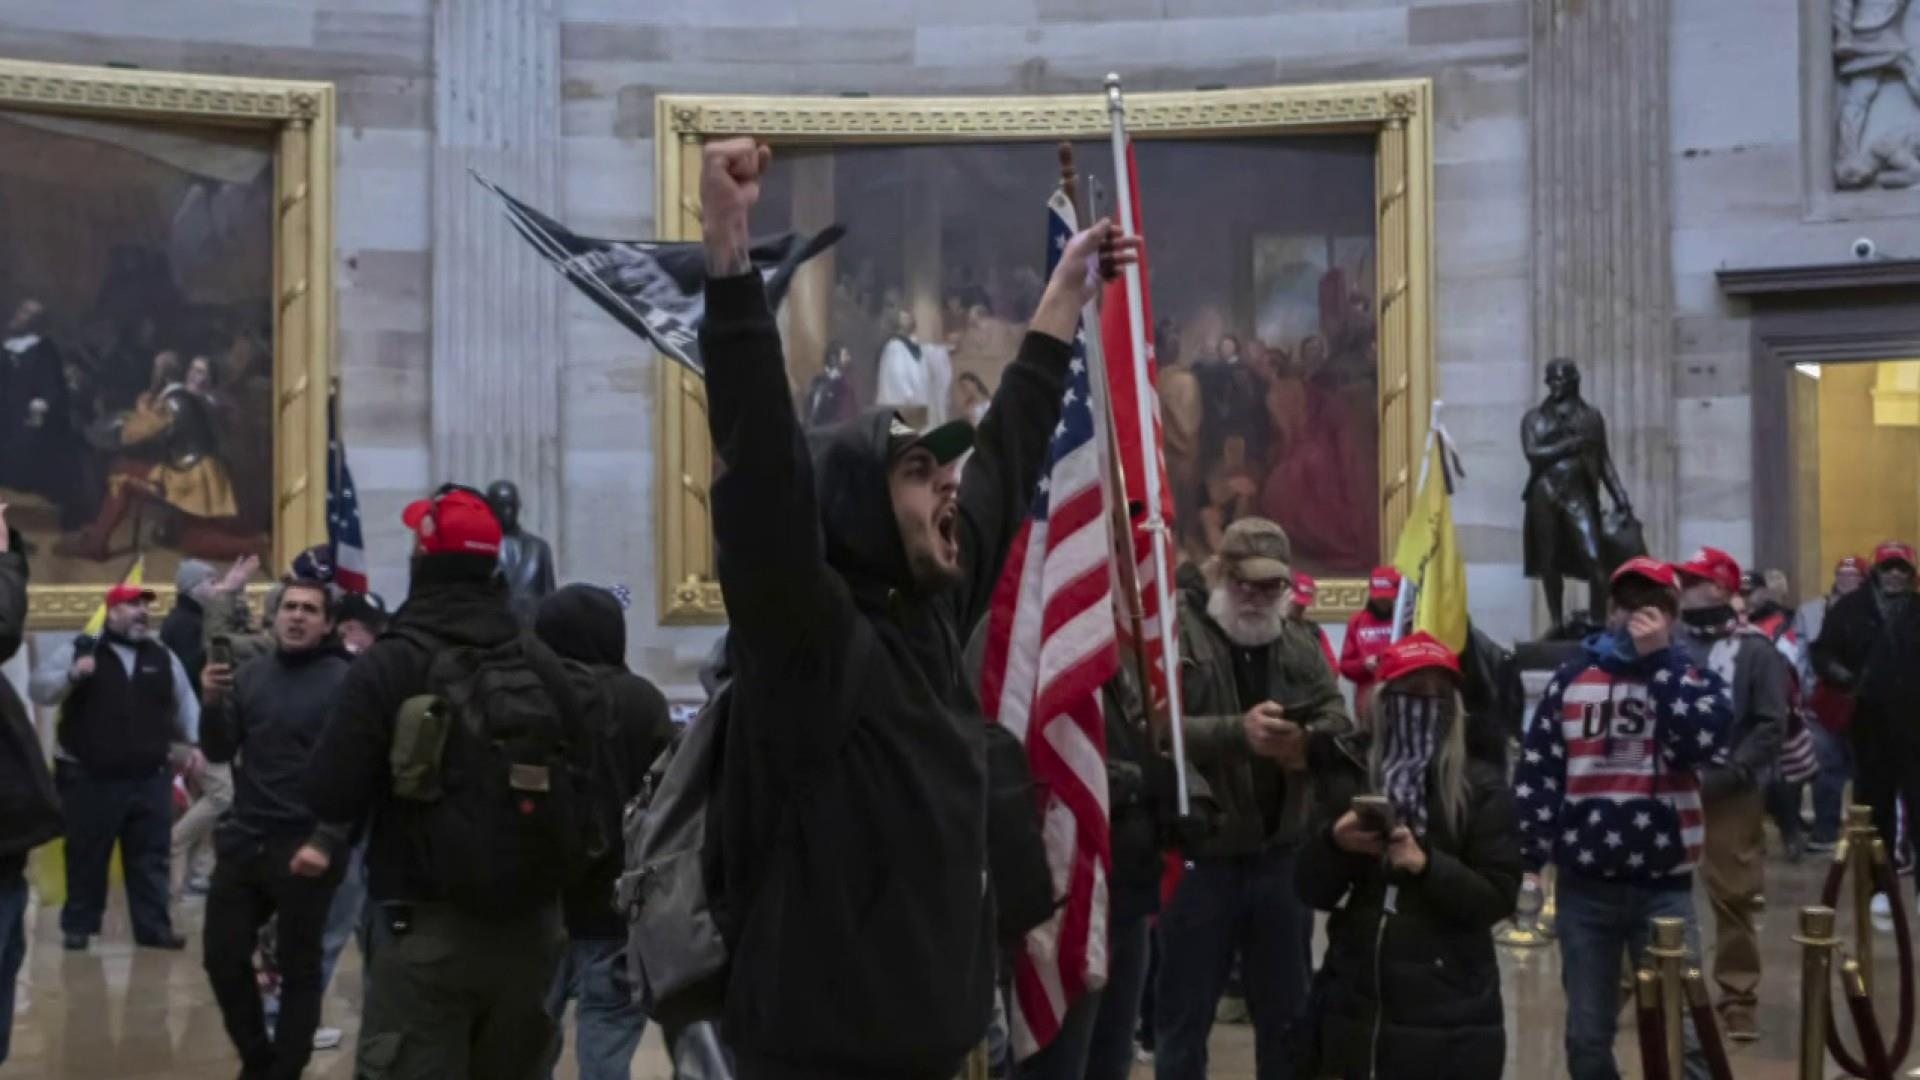 The January 6 insurrection was a final gasp for white supremacy. thumbnail